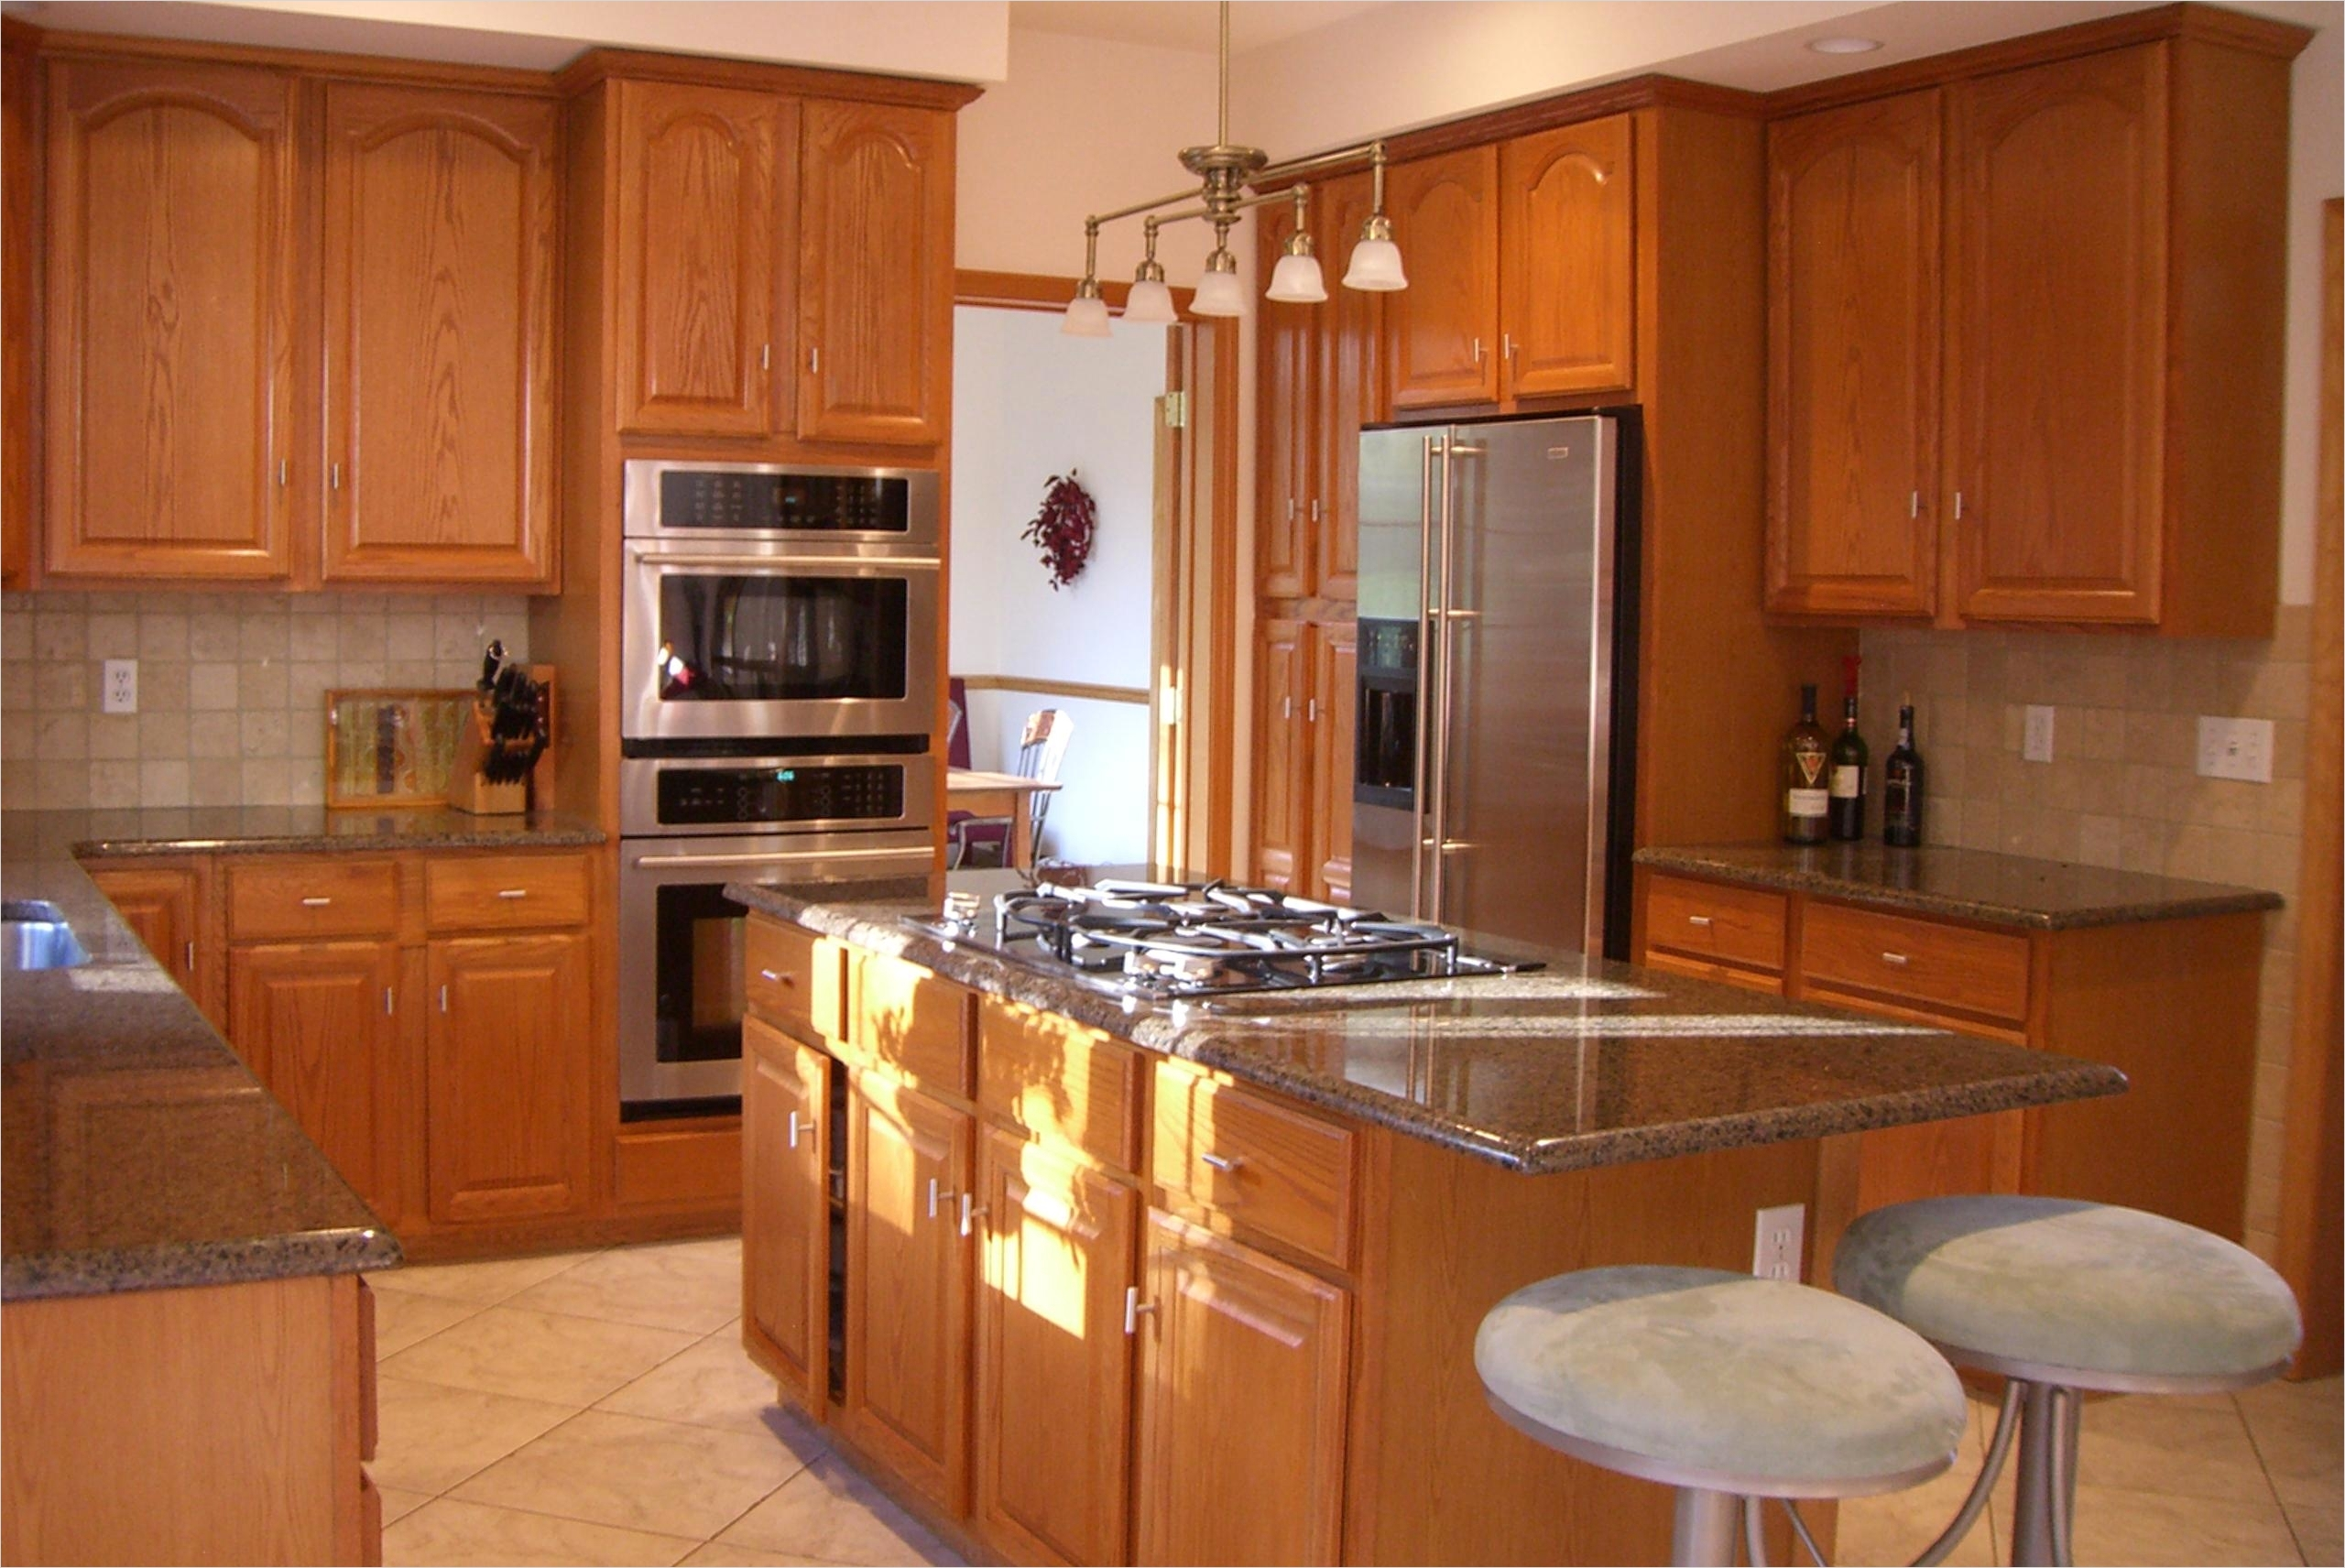 44 Perfect Ideas Small Kitchen Designs with islands 13 Small Kitchen islands Options Tips Ideas Kitchen Small Kitchen Layouts with island 2